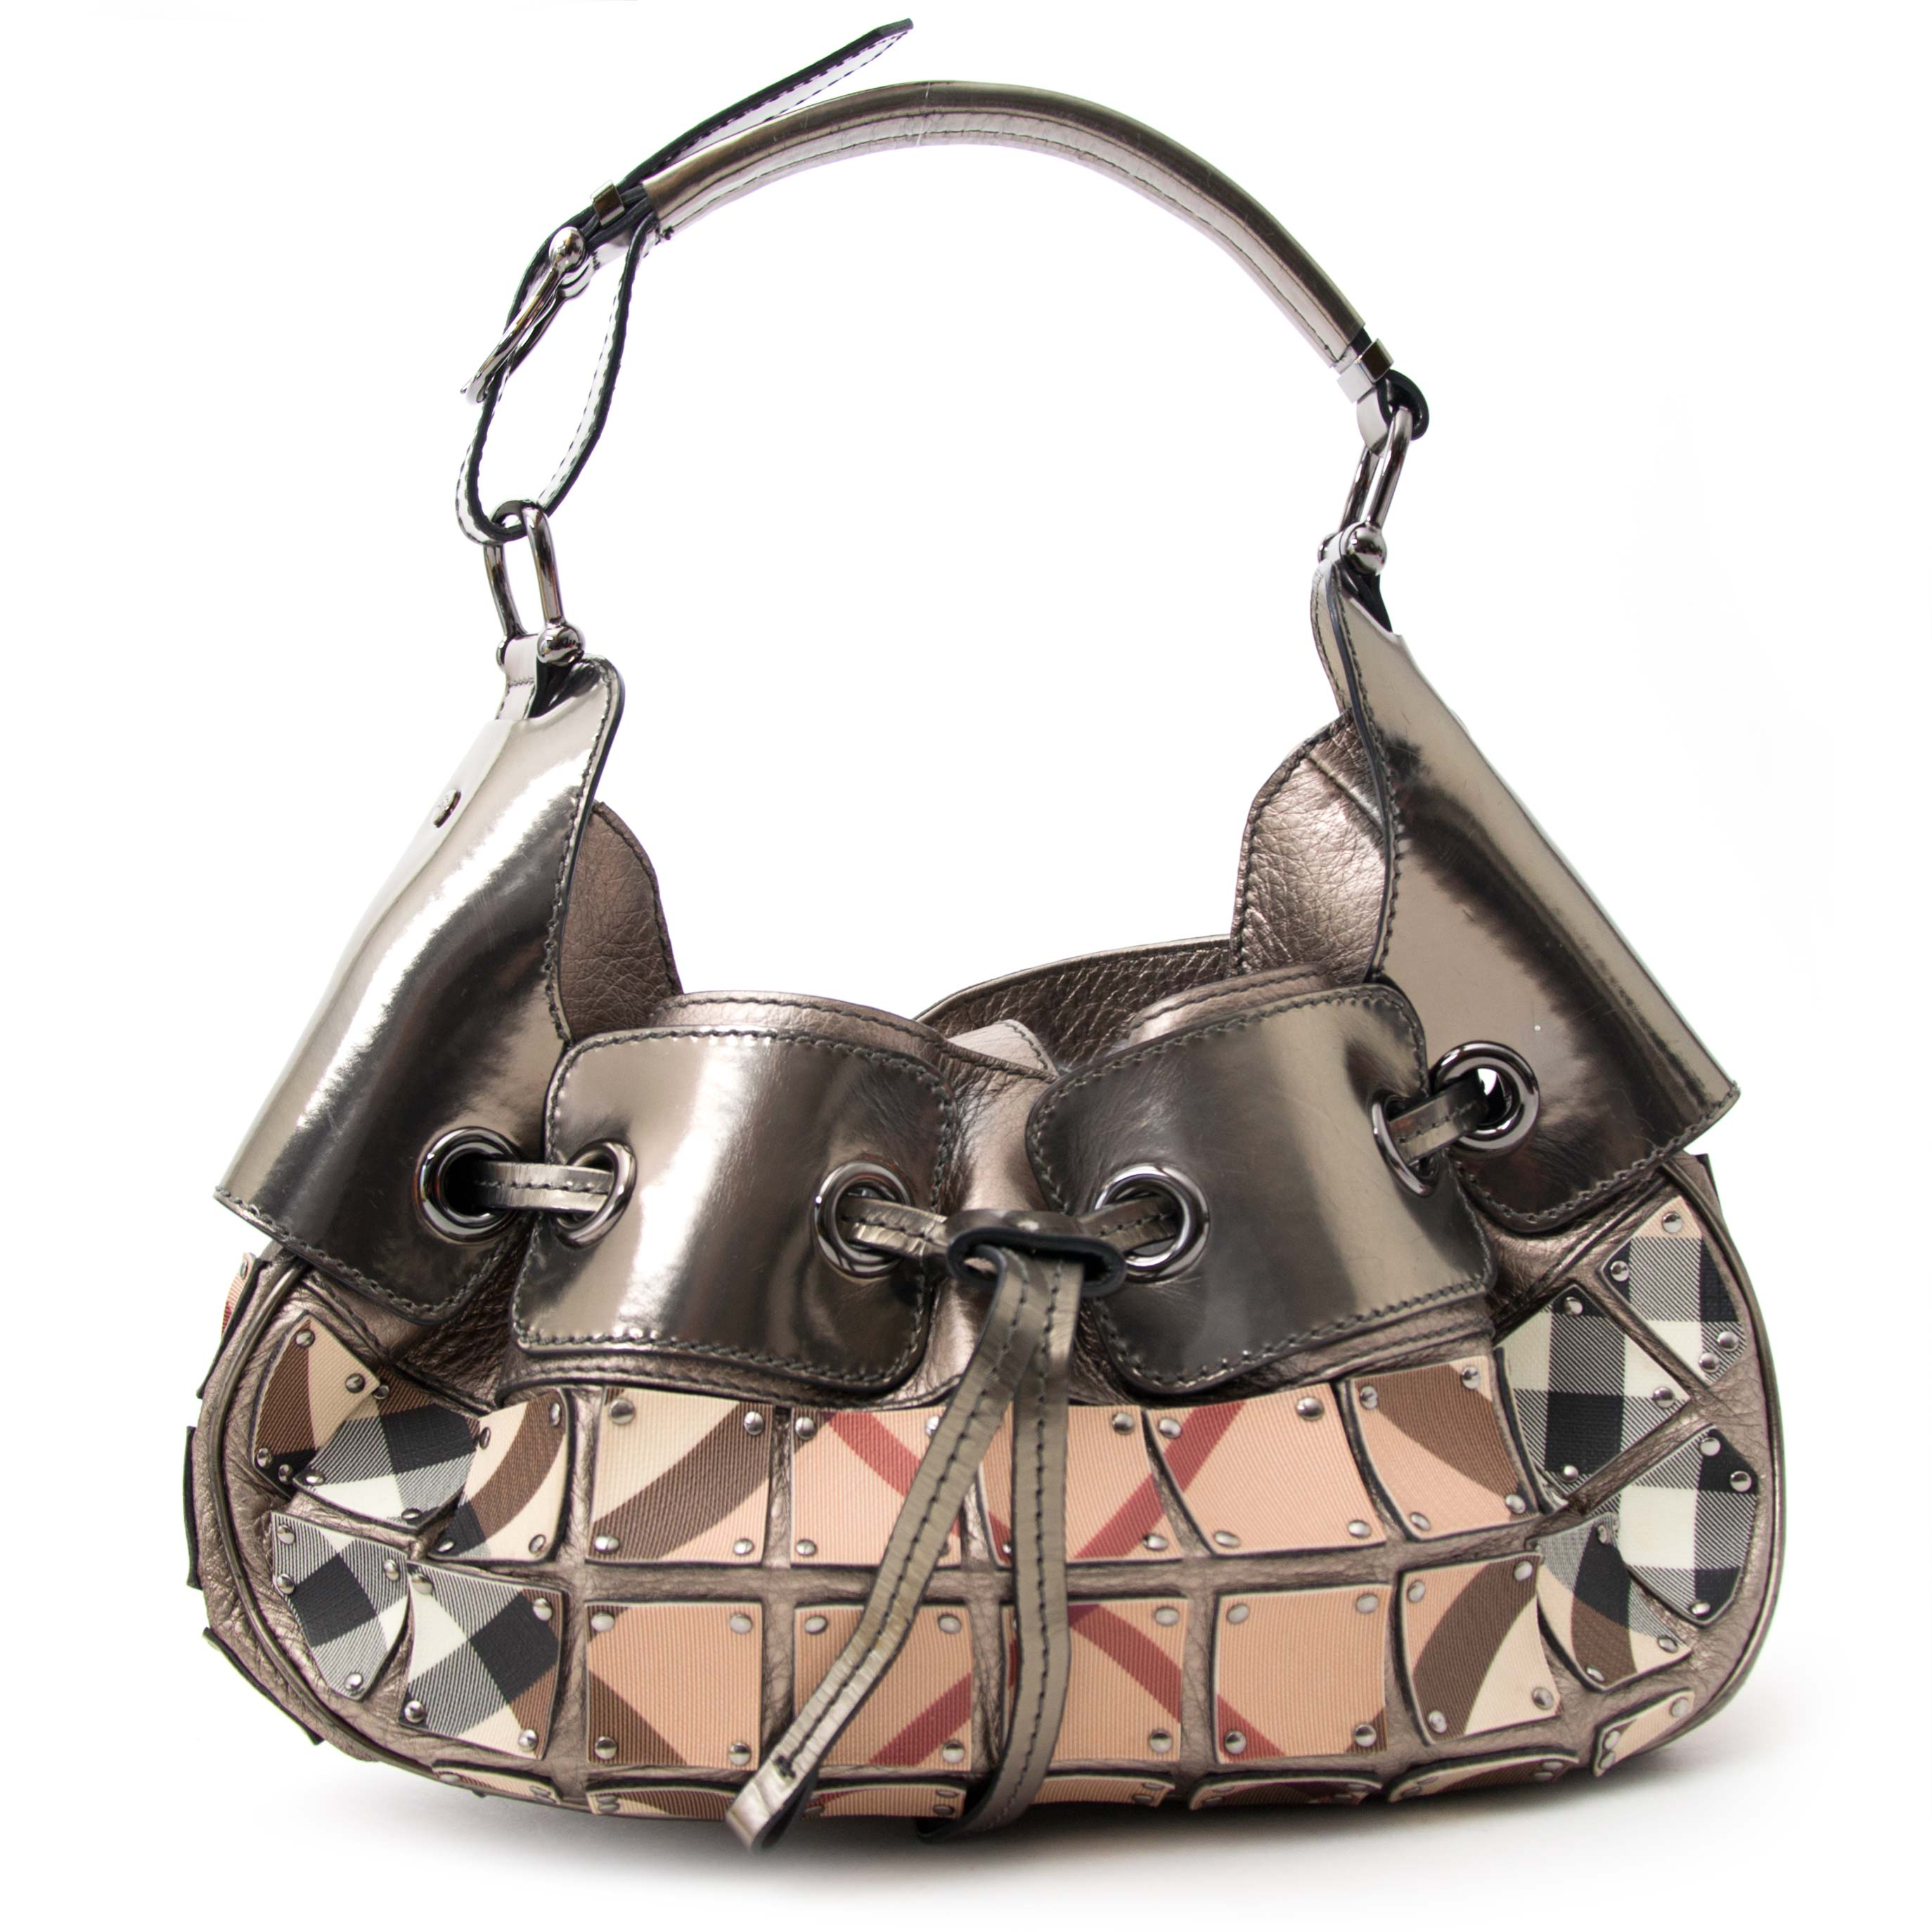 Are you looking for a Burberry Metallic and Plaid Bag